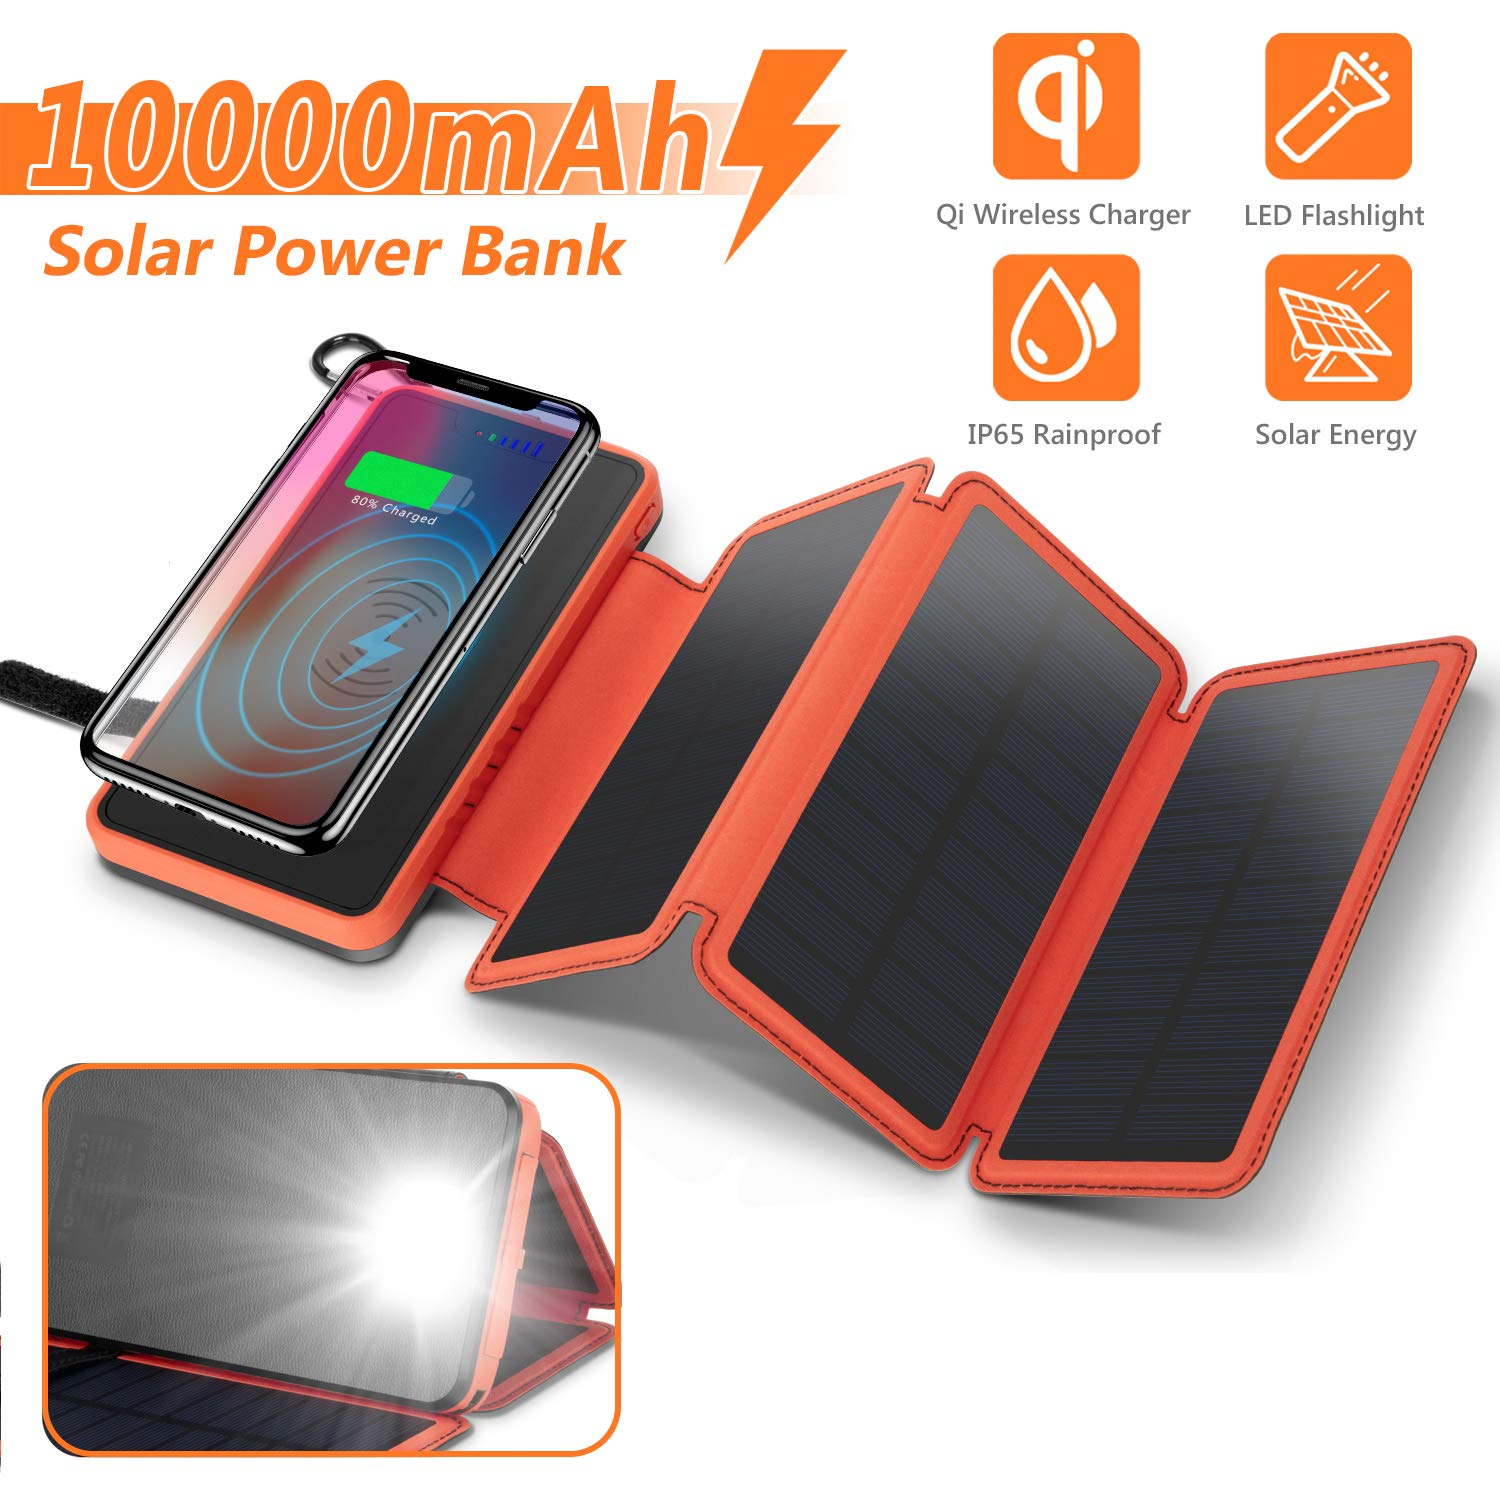 Solar Charger 10000mAh, 4.5W Qi Wireless Charger Portable Power Bank External Battery Back with 3 Solar Panels, Flashlight, Dual 5V/2.1A USB Port, IP65 Rainproof for Camping Hiking Fishing(Orange) by AMZGO